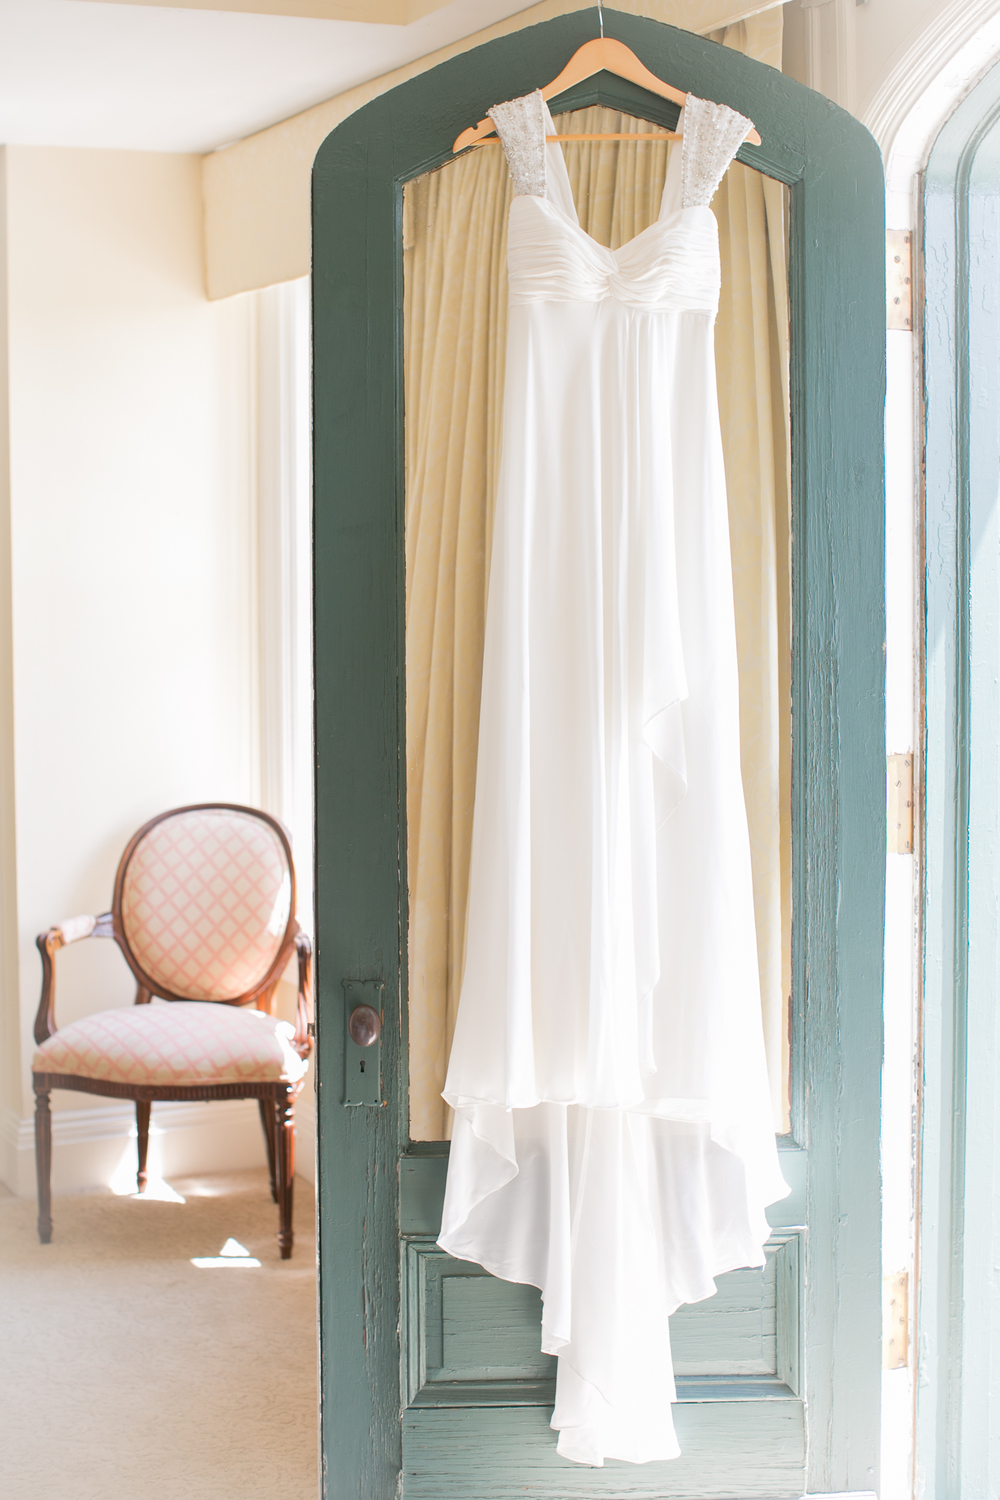 The bride's dress hanging in her dressing room